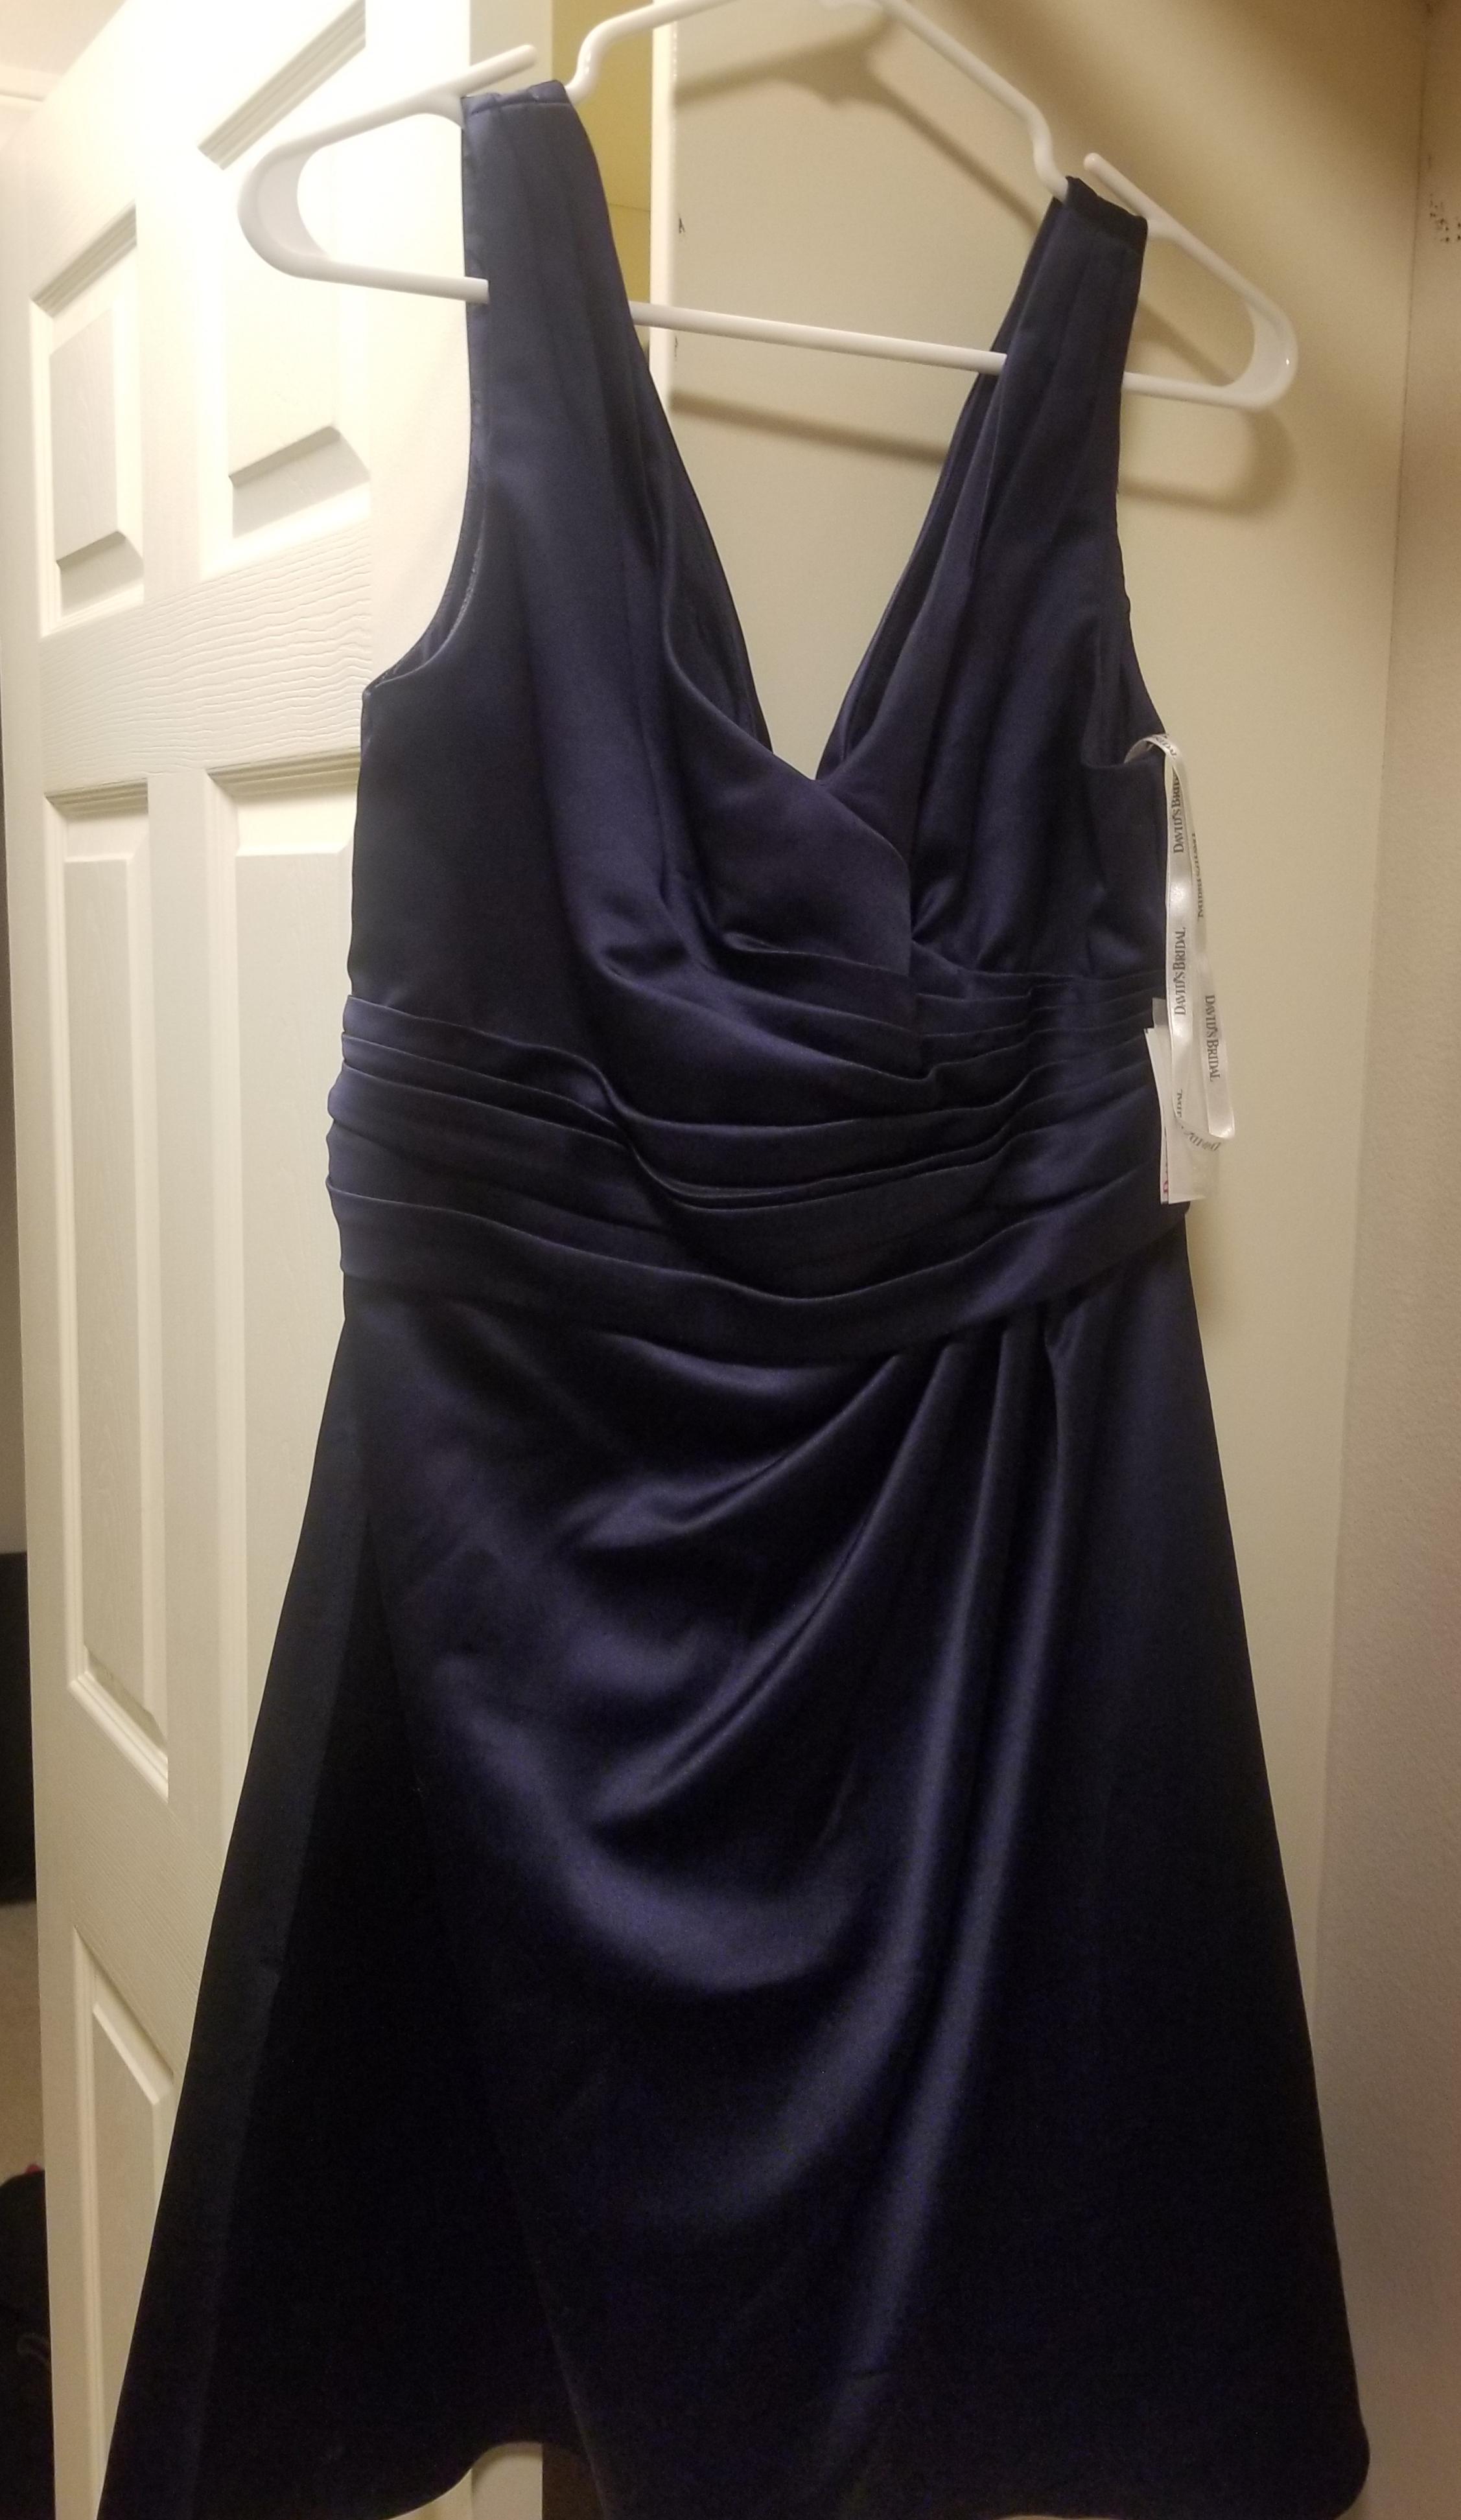 David s Bridal Marine Satin F14823 Modest Bridesmaid Mob Dress Size     David s Bridal Marine Satin F14823 Modest Bridesmaid Mob Dress Size 10  M